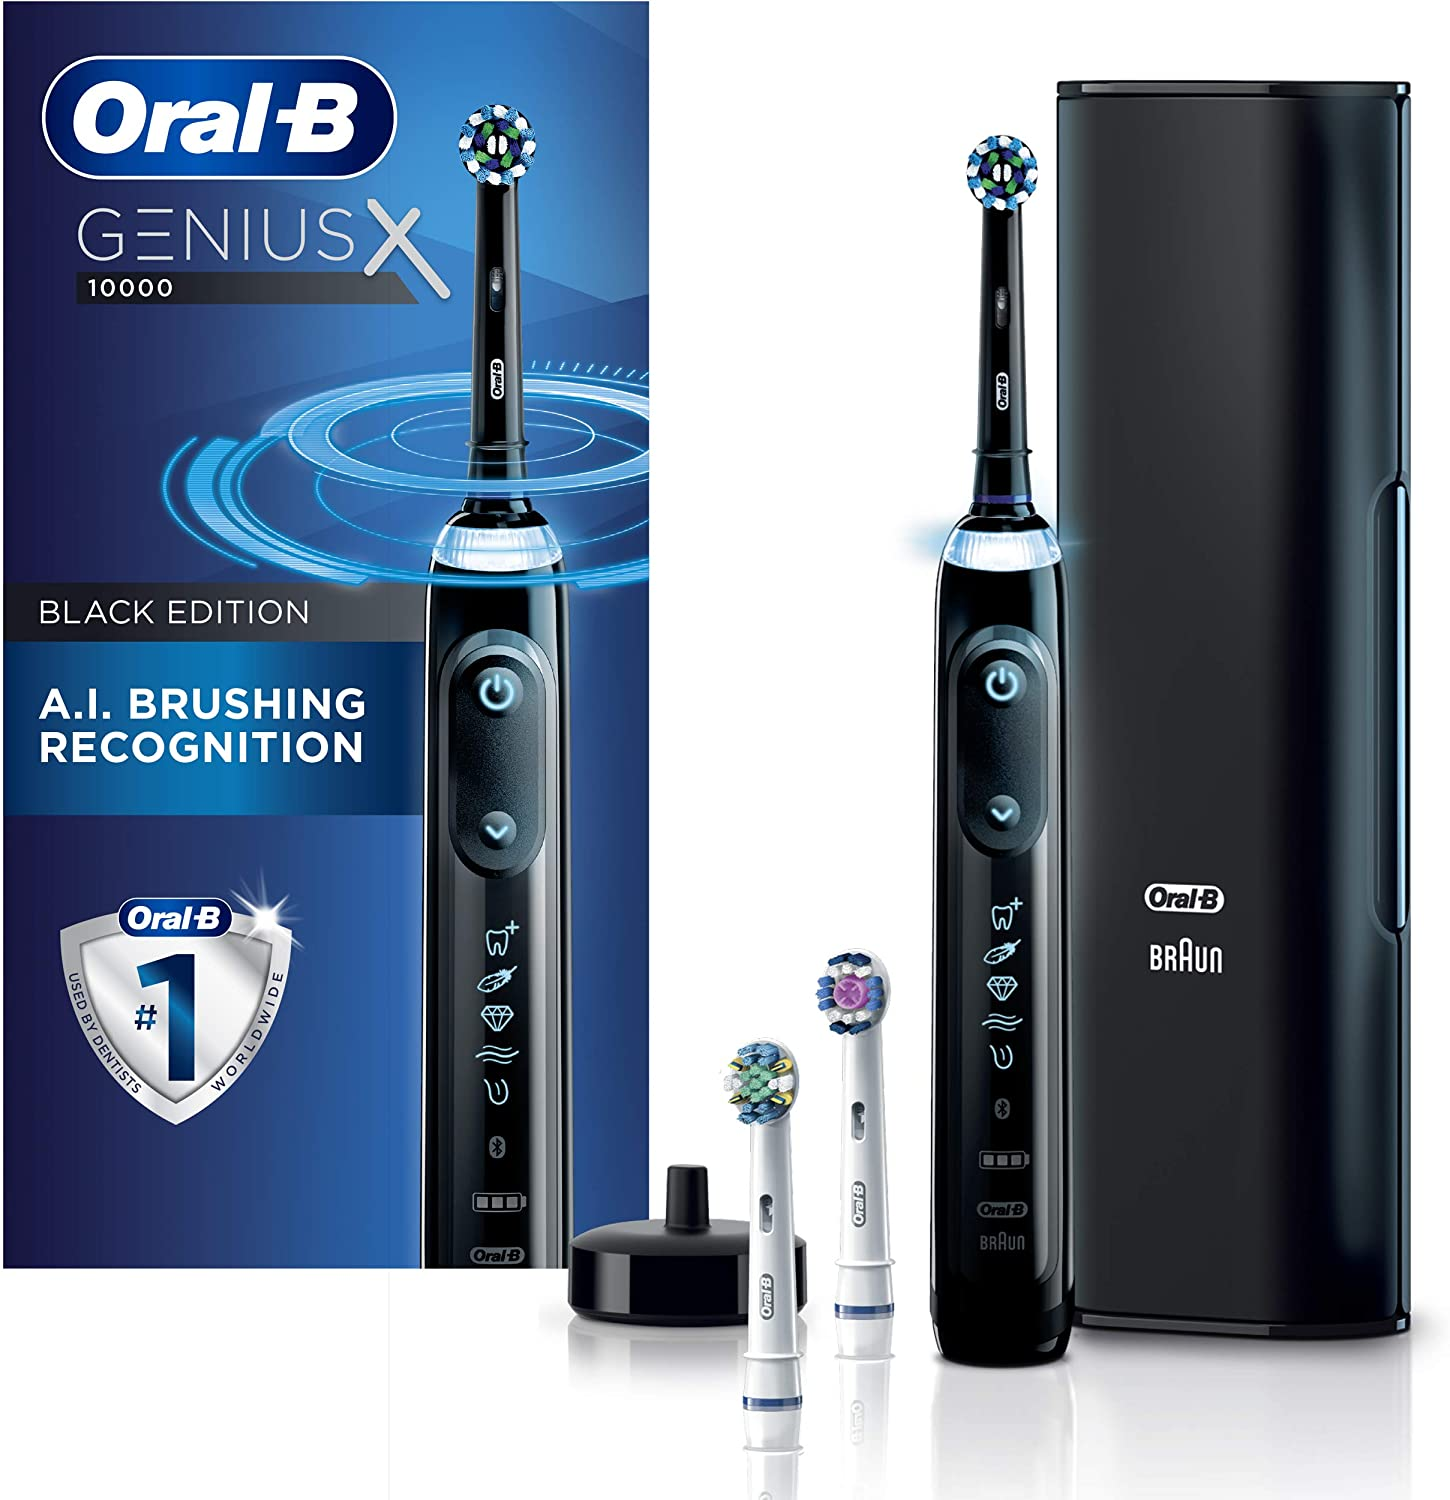 Oral-B GENIUS X Electric Toothbrush